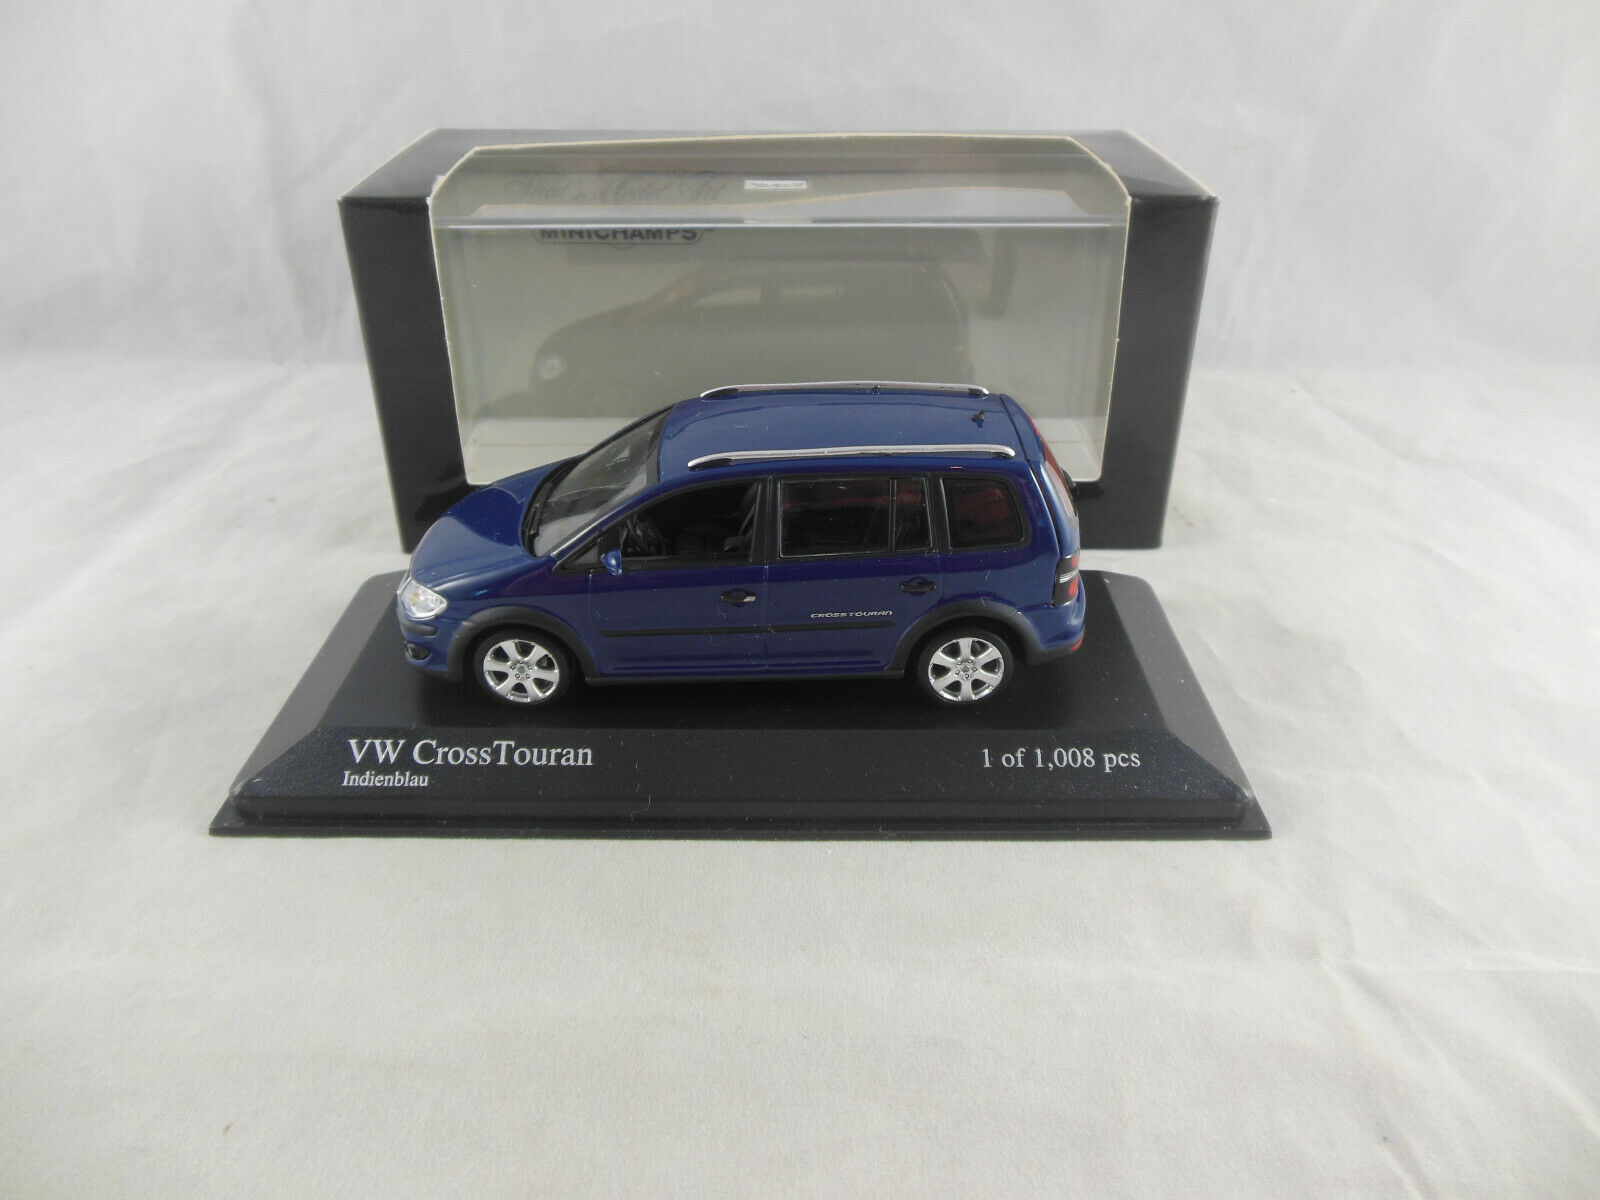 Minichamps 400 056170 2006 VW Cross Touran in bluee Ltd Ed. 1 of 1008